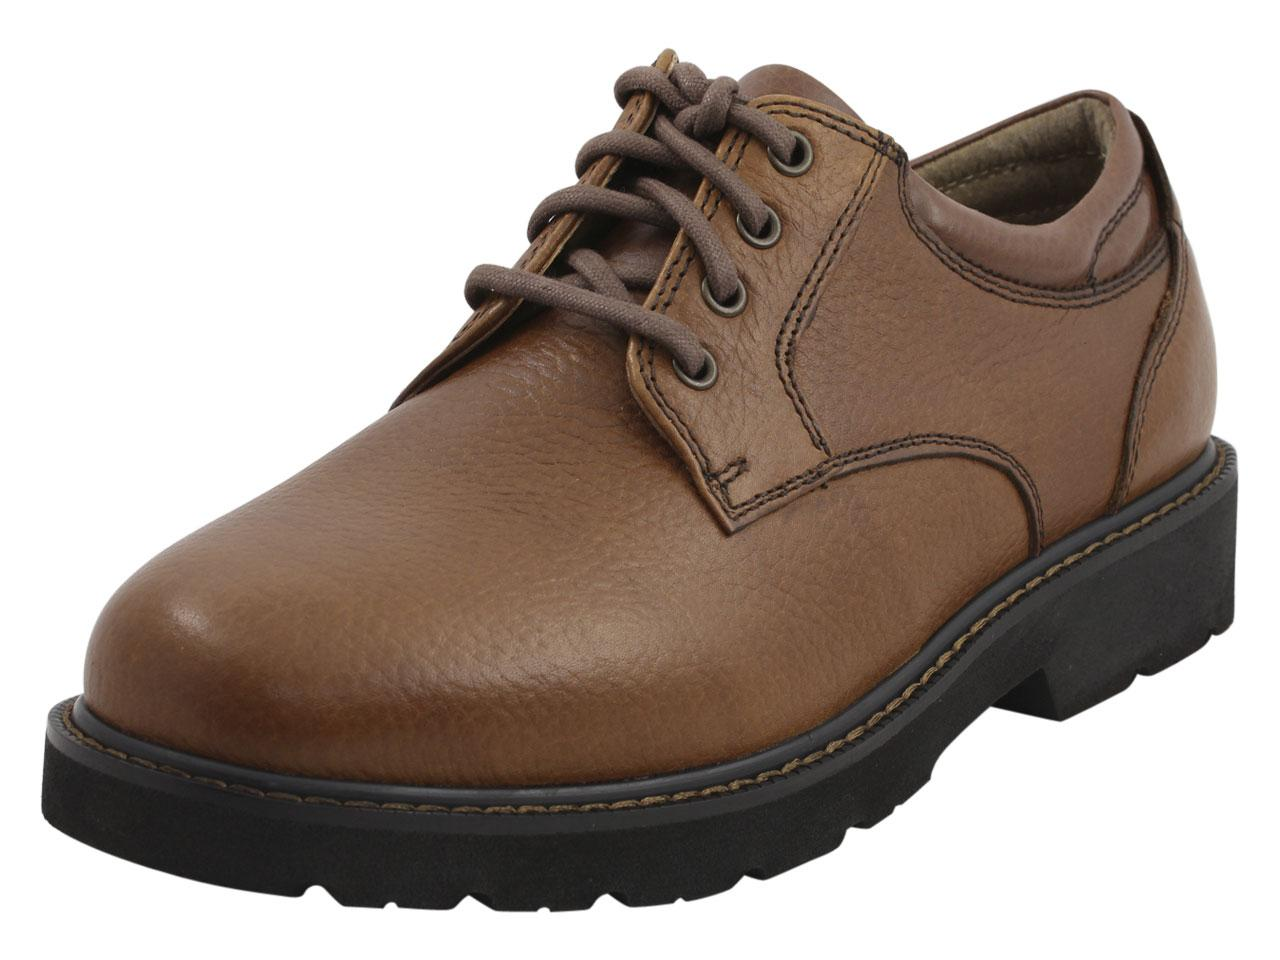 Image of Dockers Men's Shelter Water Repellent Oxfords Shoes - Brown - 8.5 D(M) US